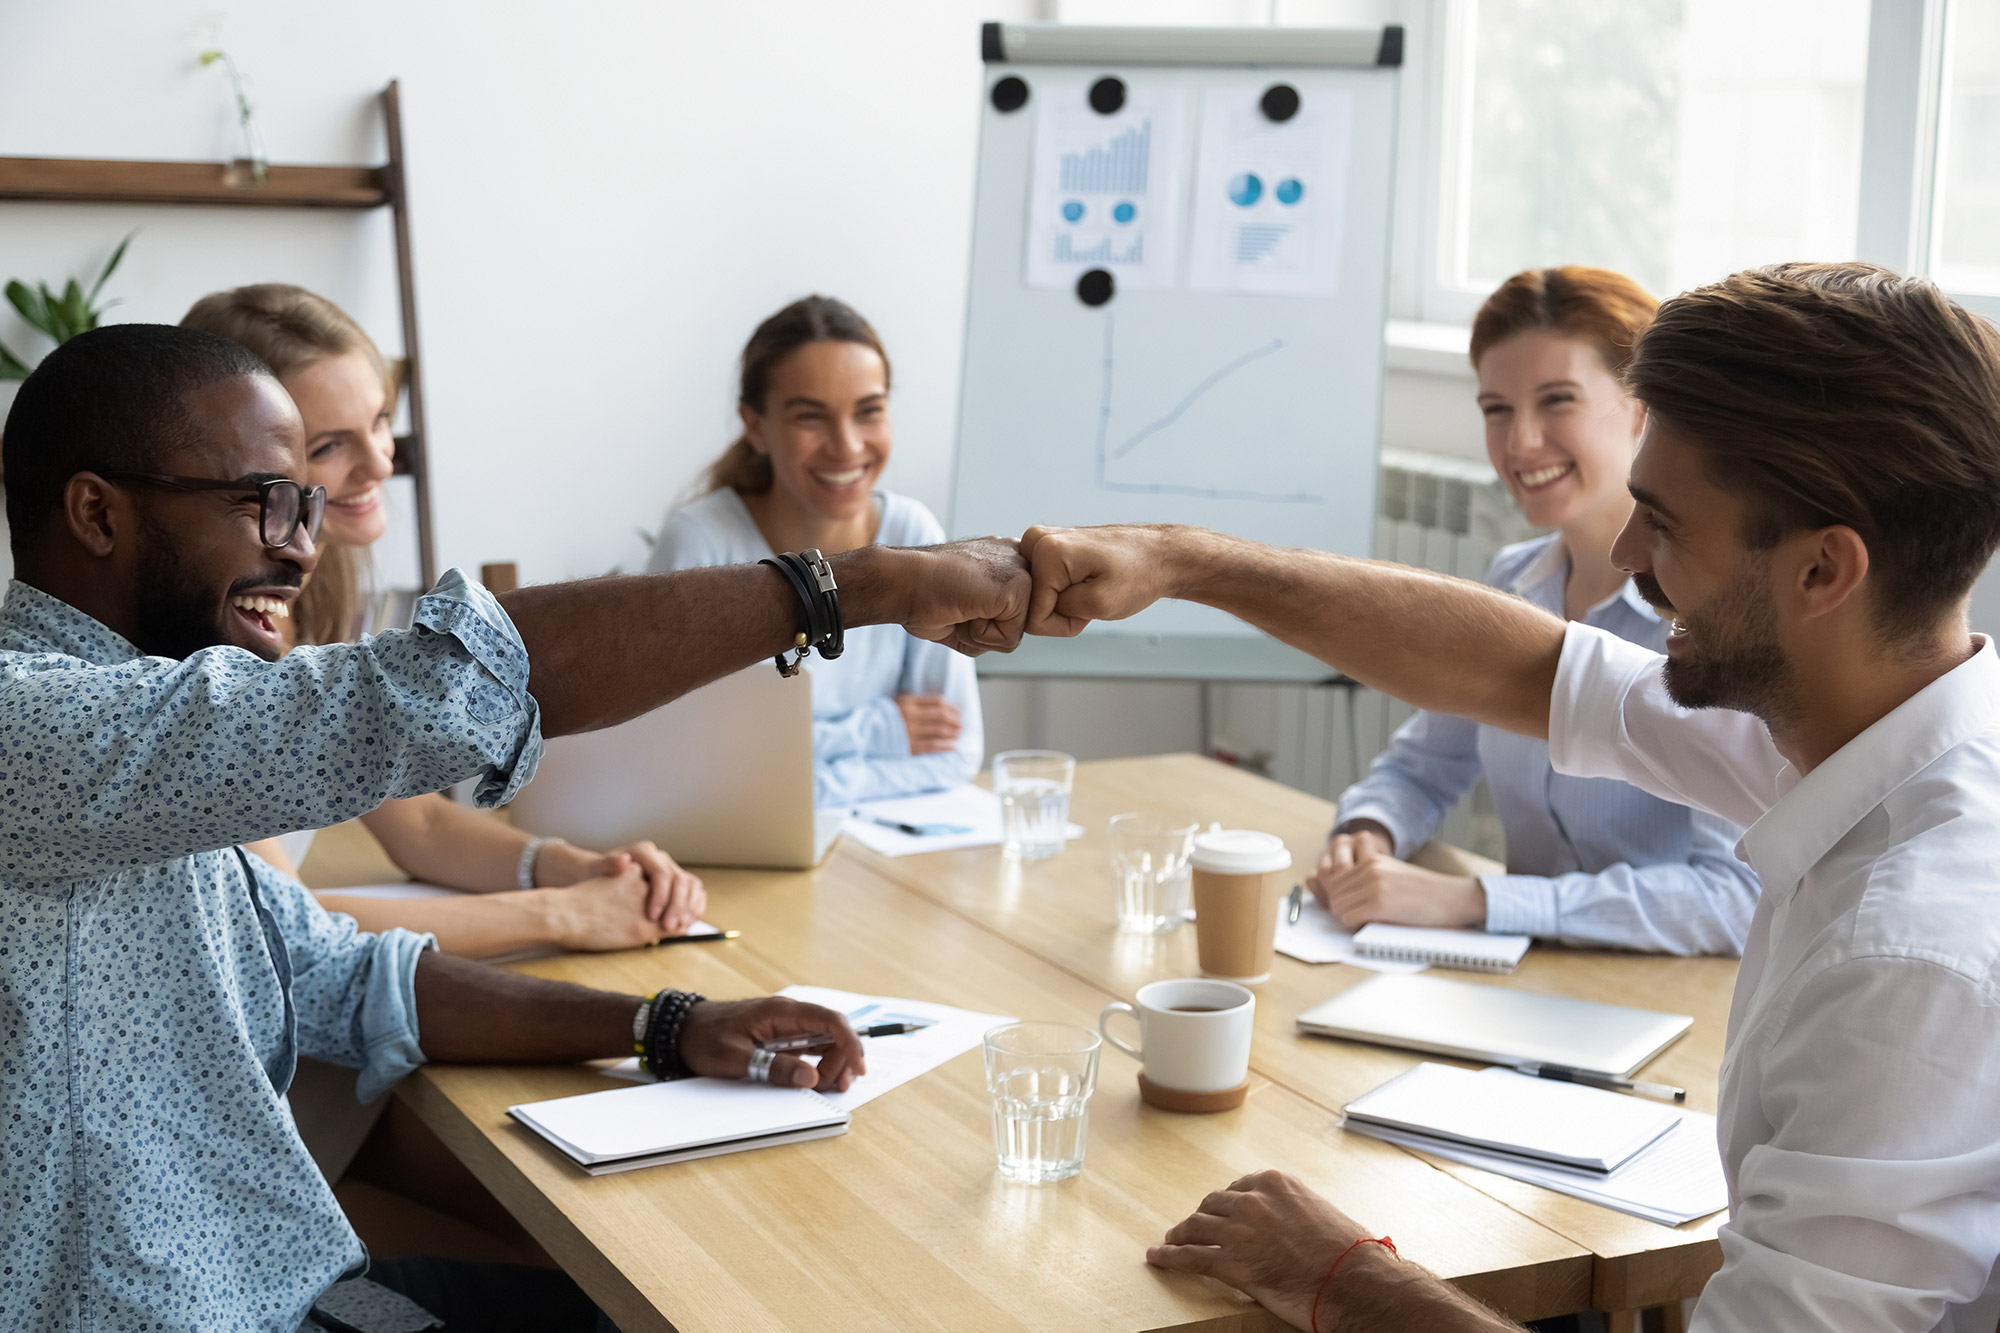 A team of people fist bumping and sitting around a conference table.